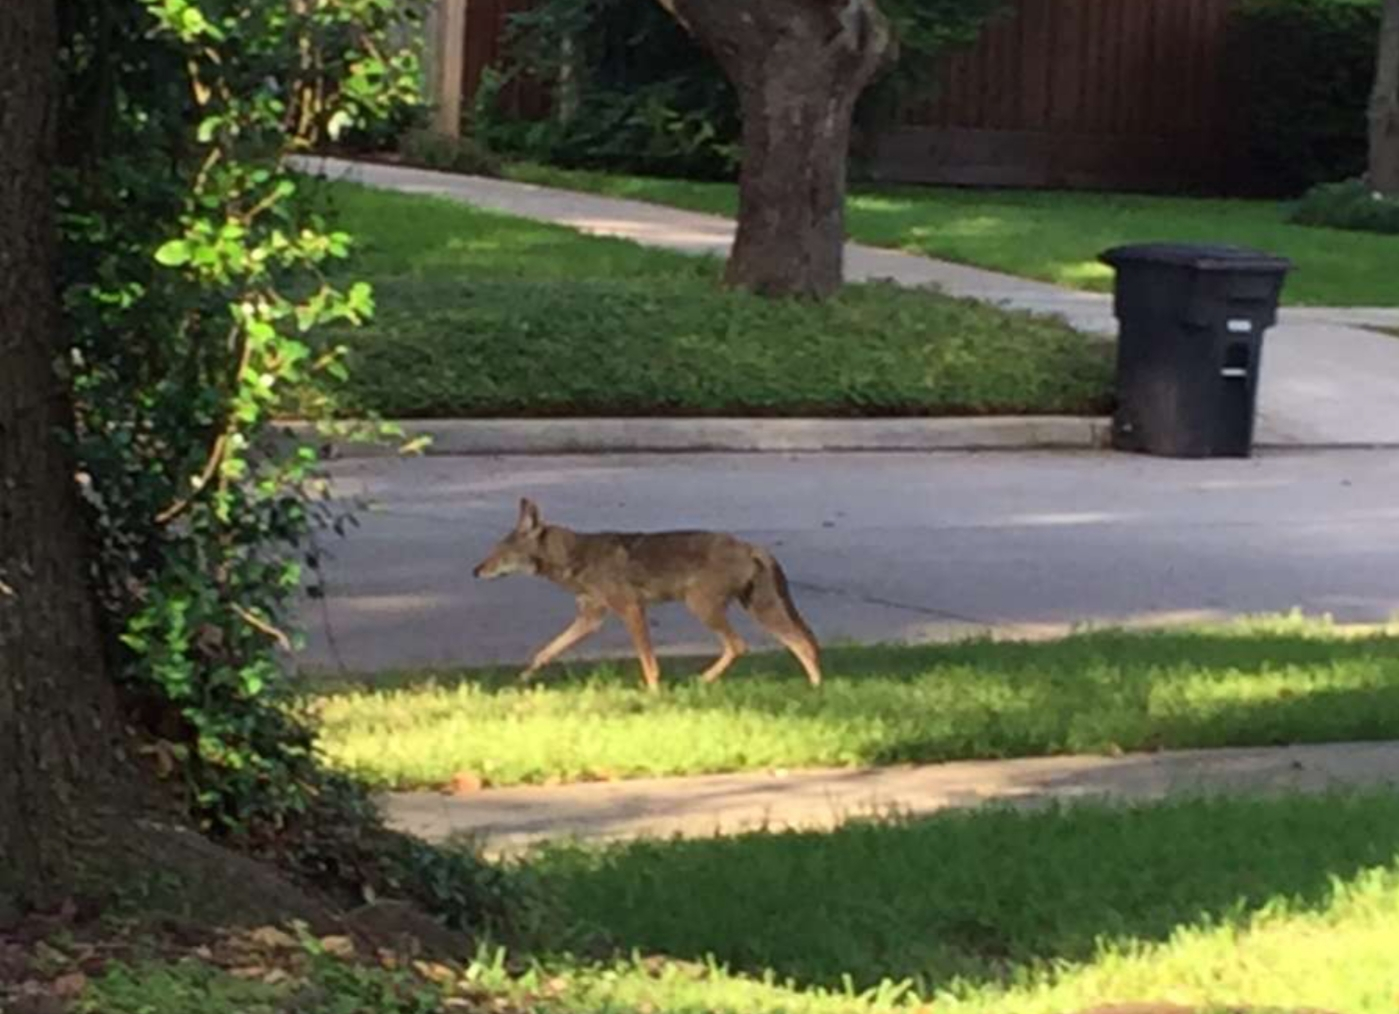 Coyotes spotted on Rice University campus, students and staffed warned to be watchful